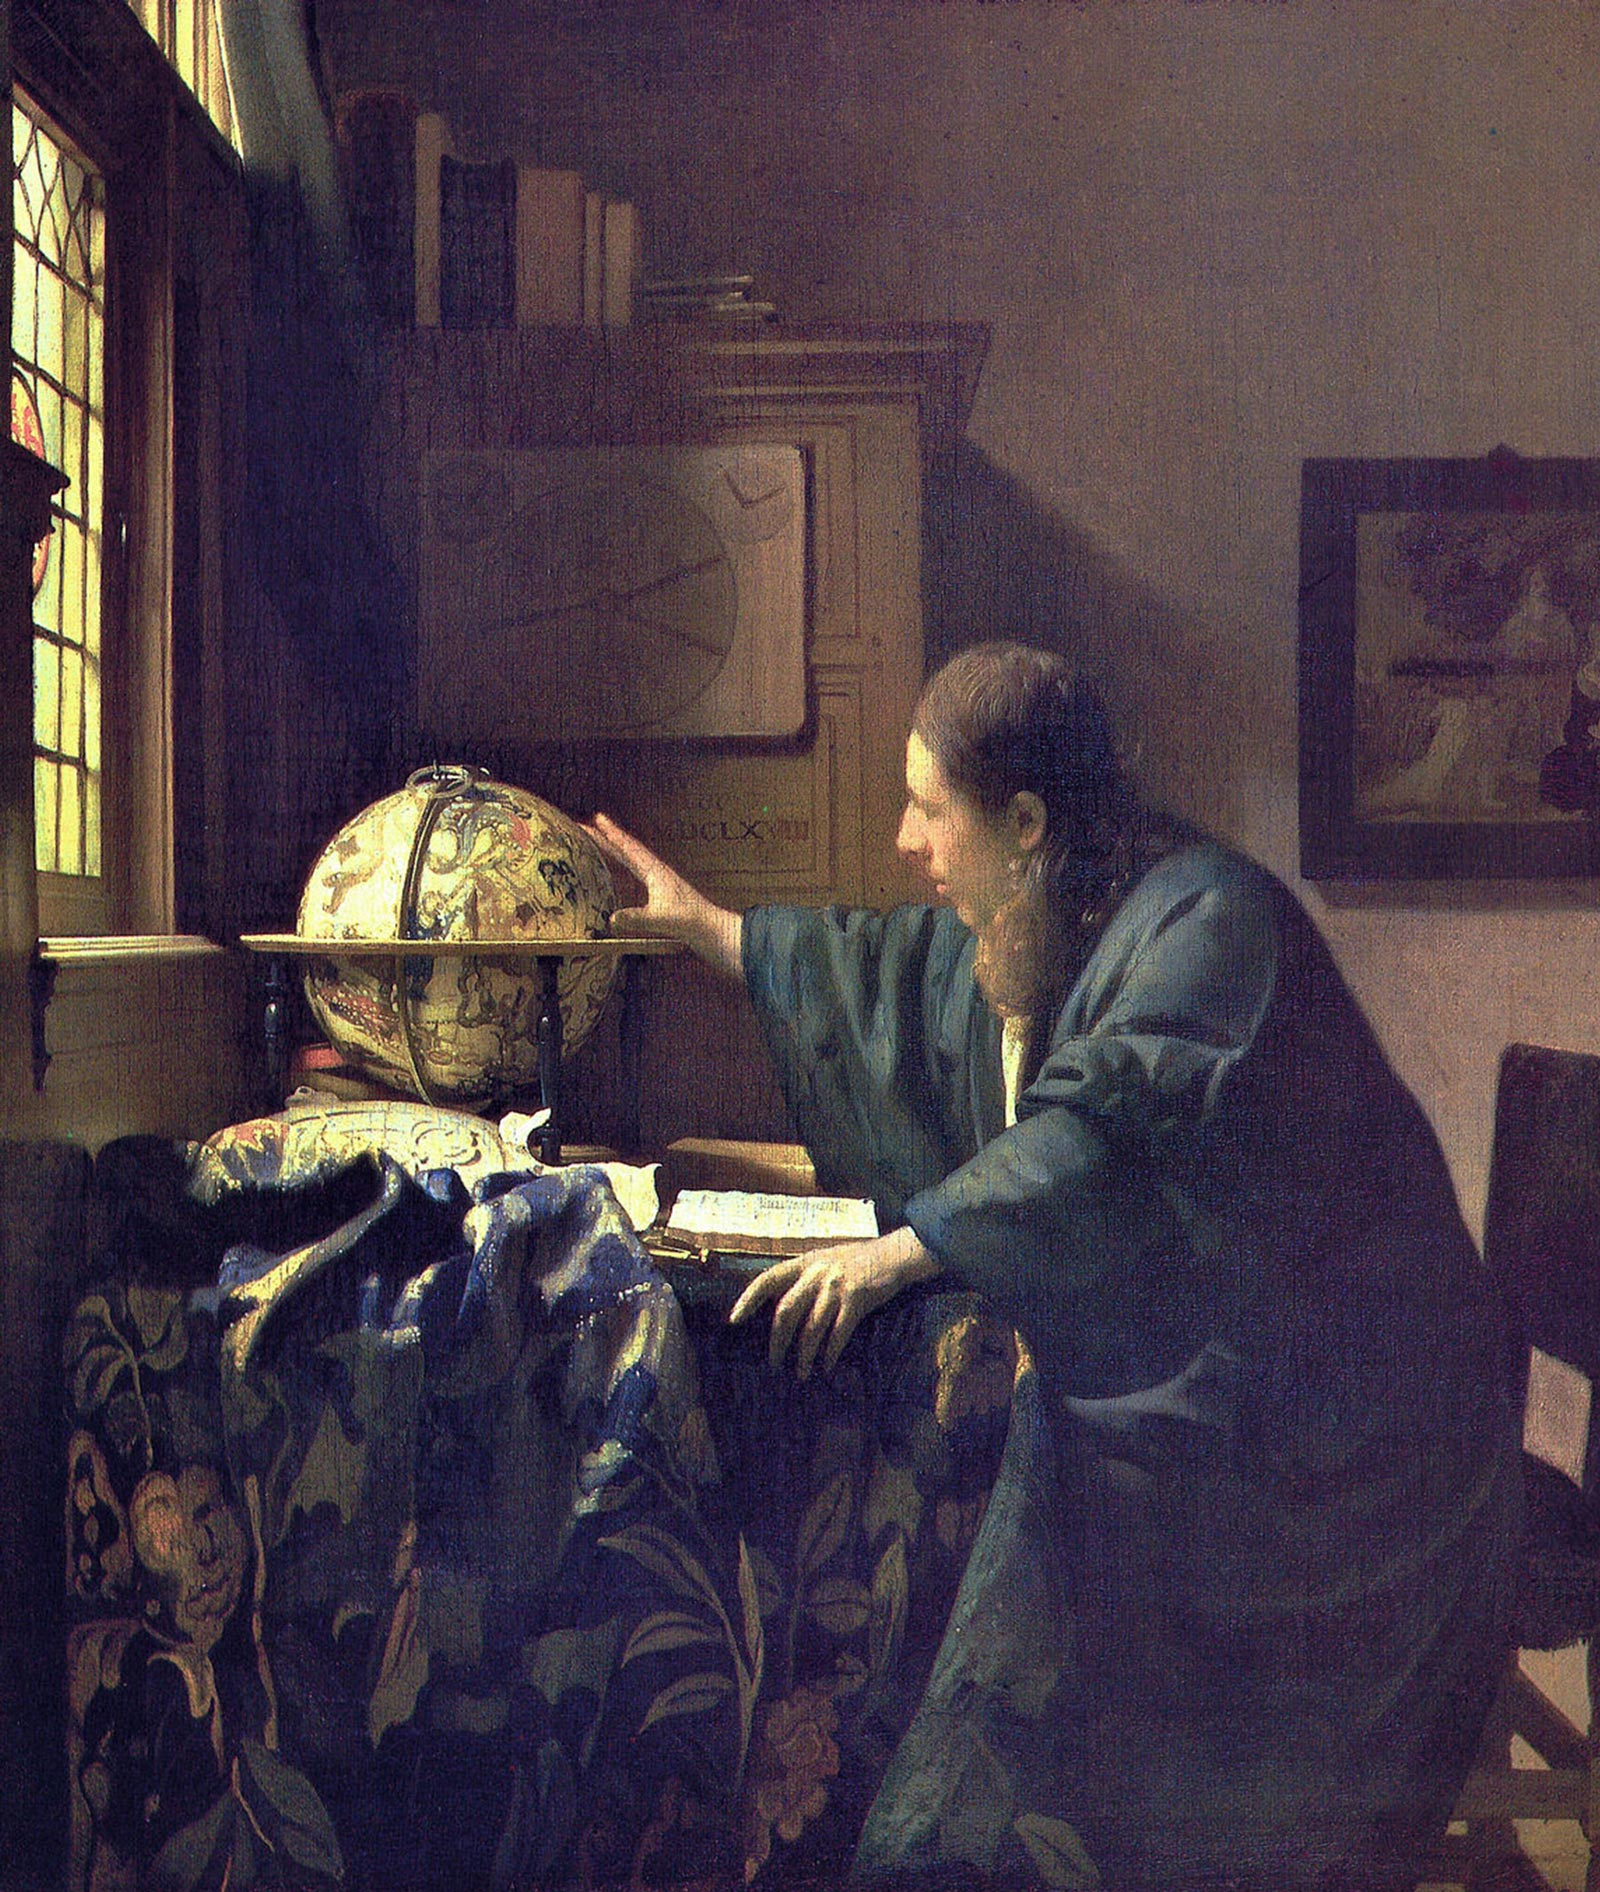 The Astronomer, Johannes Vermeer, vermeer camera obscura